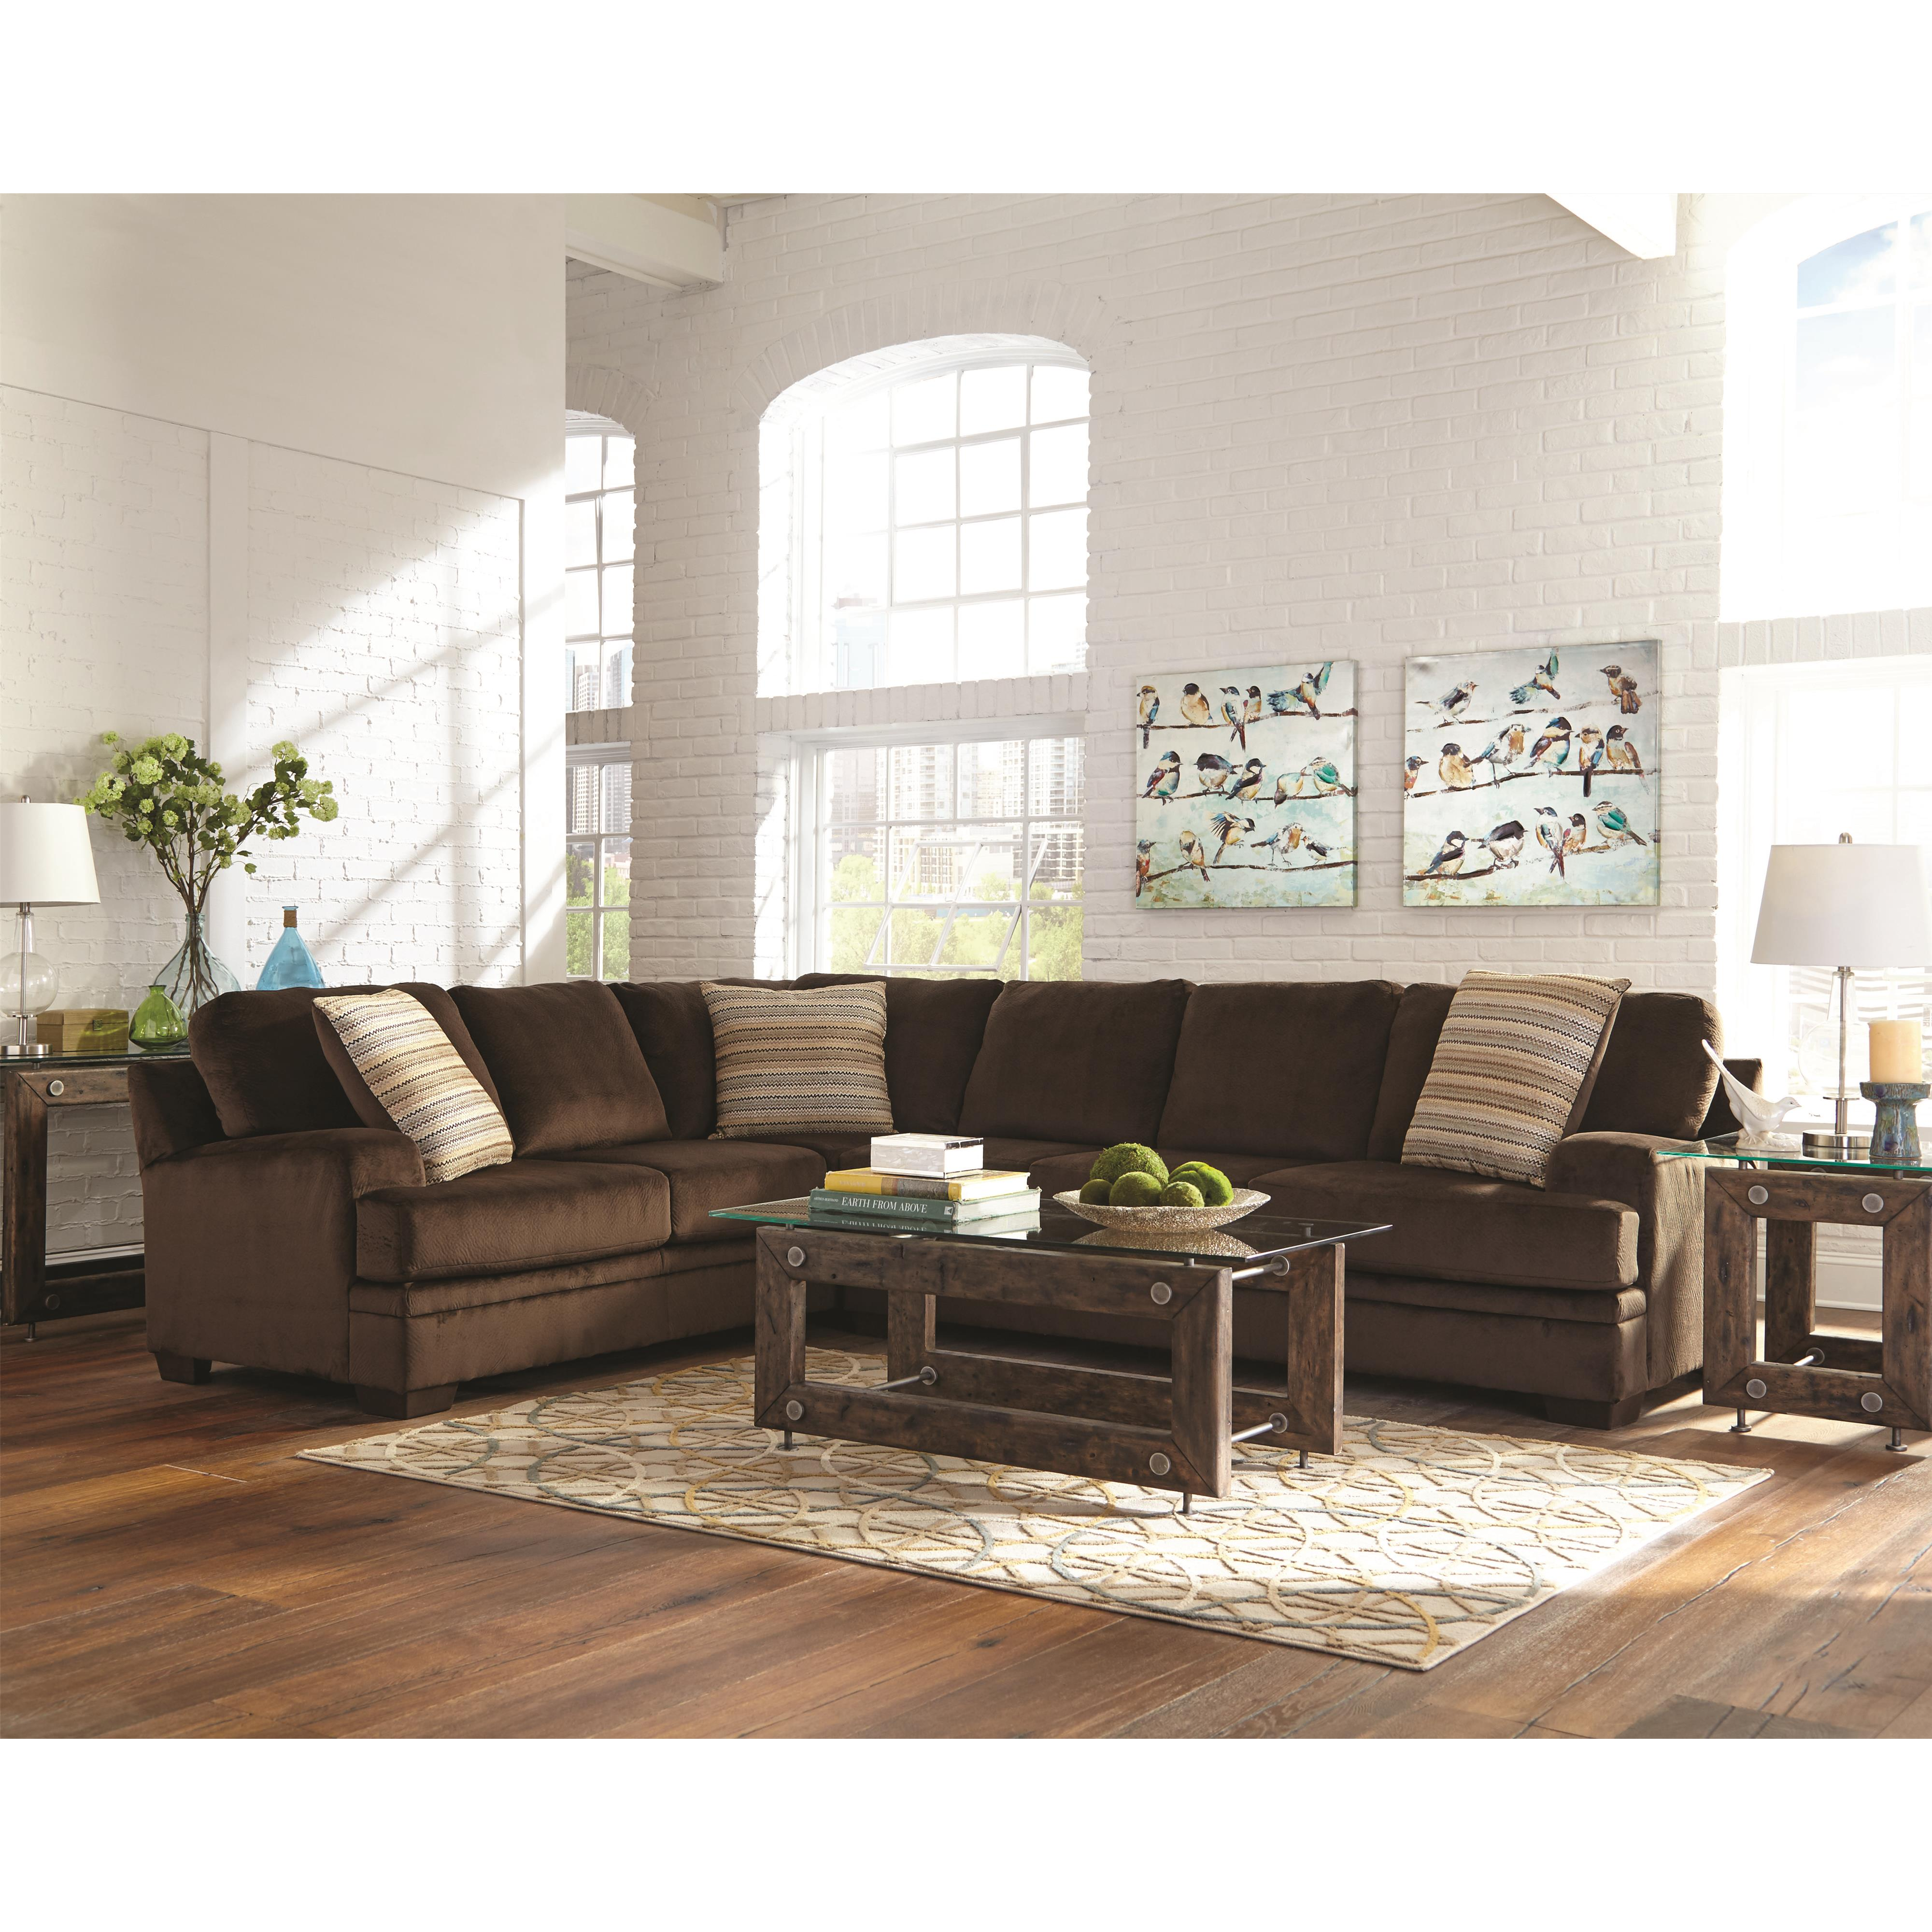 Robion Dark Brown Plush Corner Sectional Quality